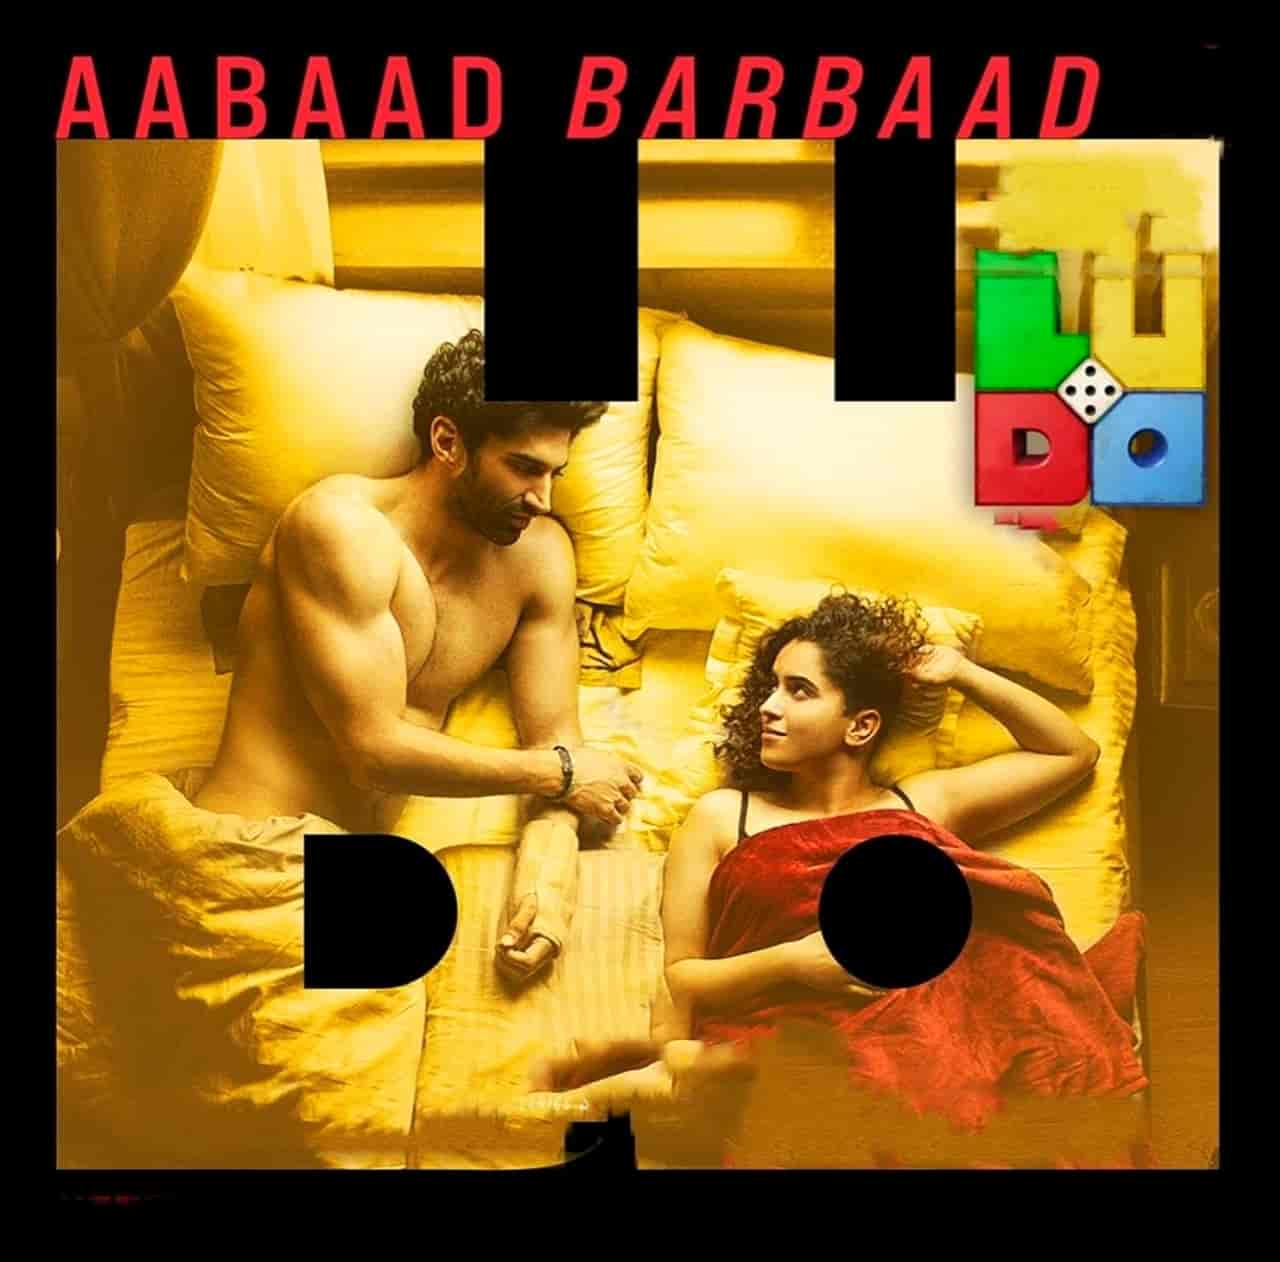 Aabaad Barbaad Hindi Song Image From Movie Ludo Sung By Arijit Singh